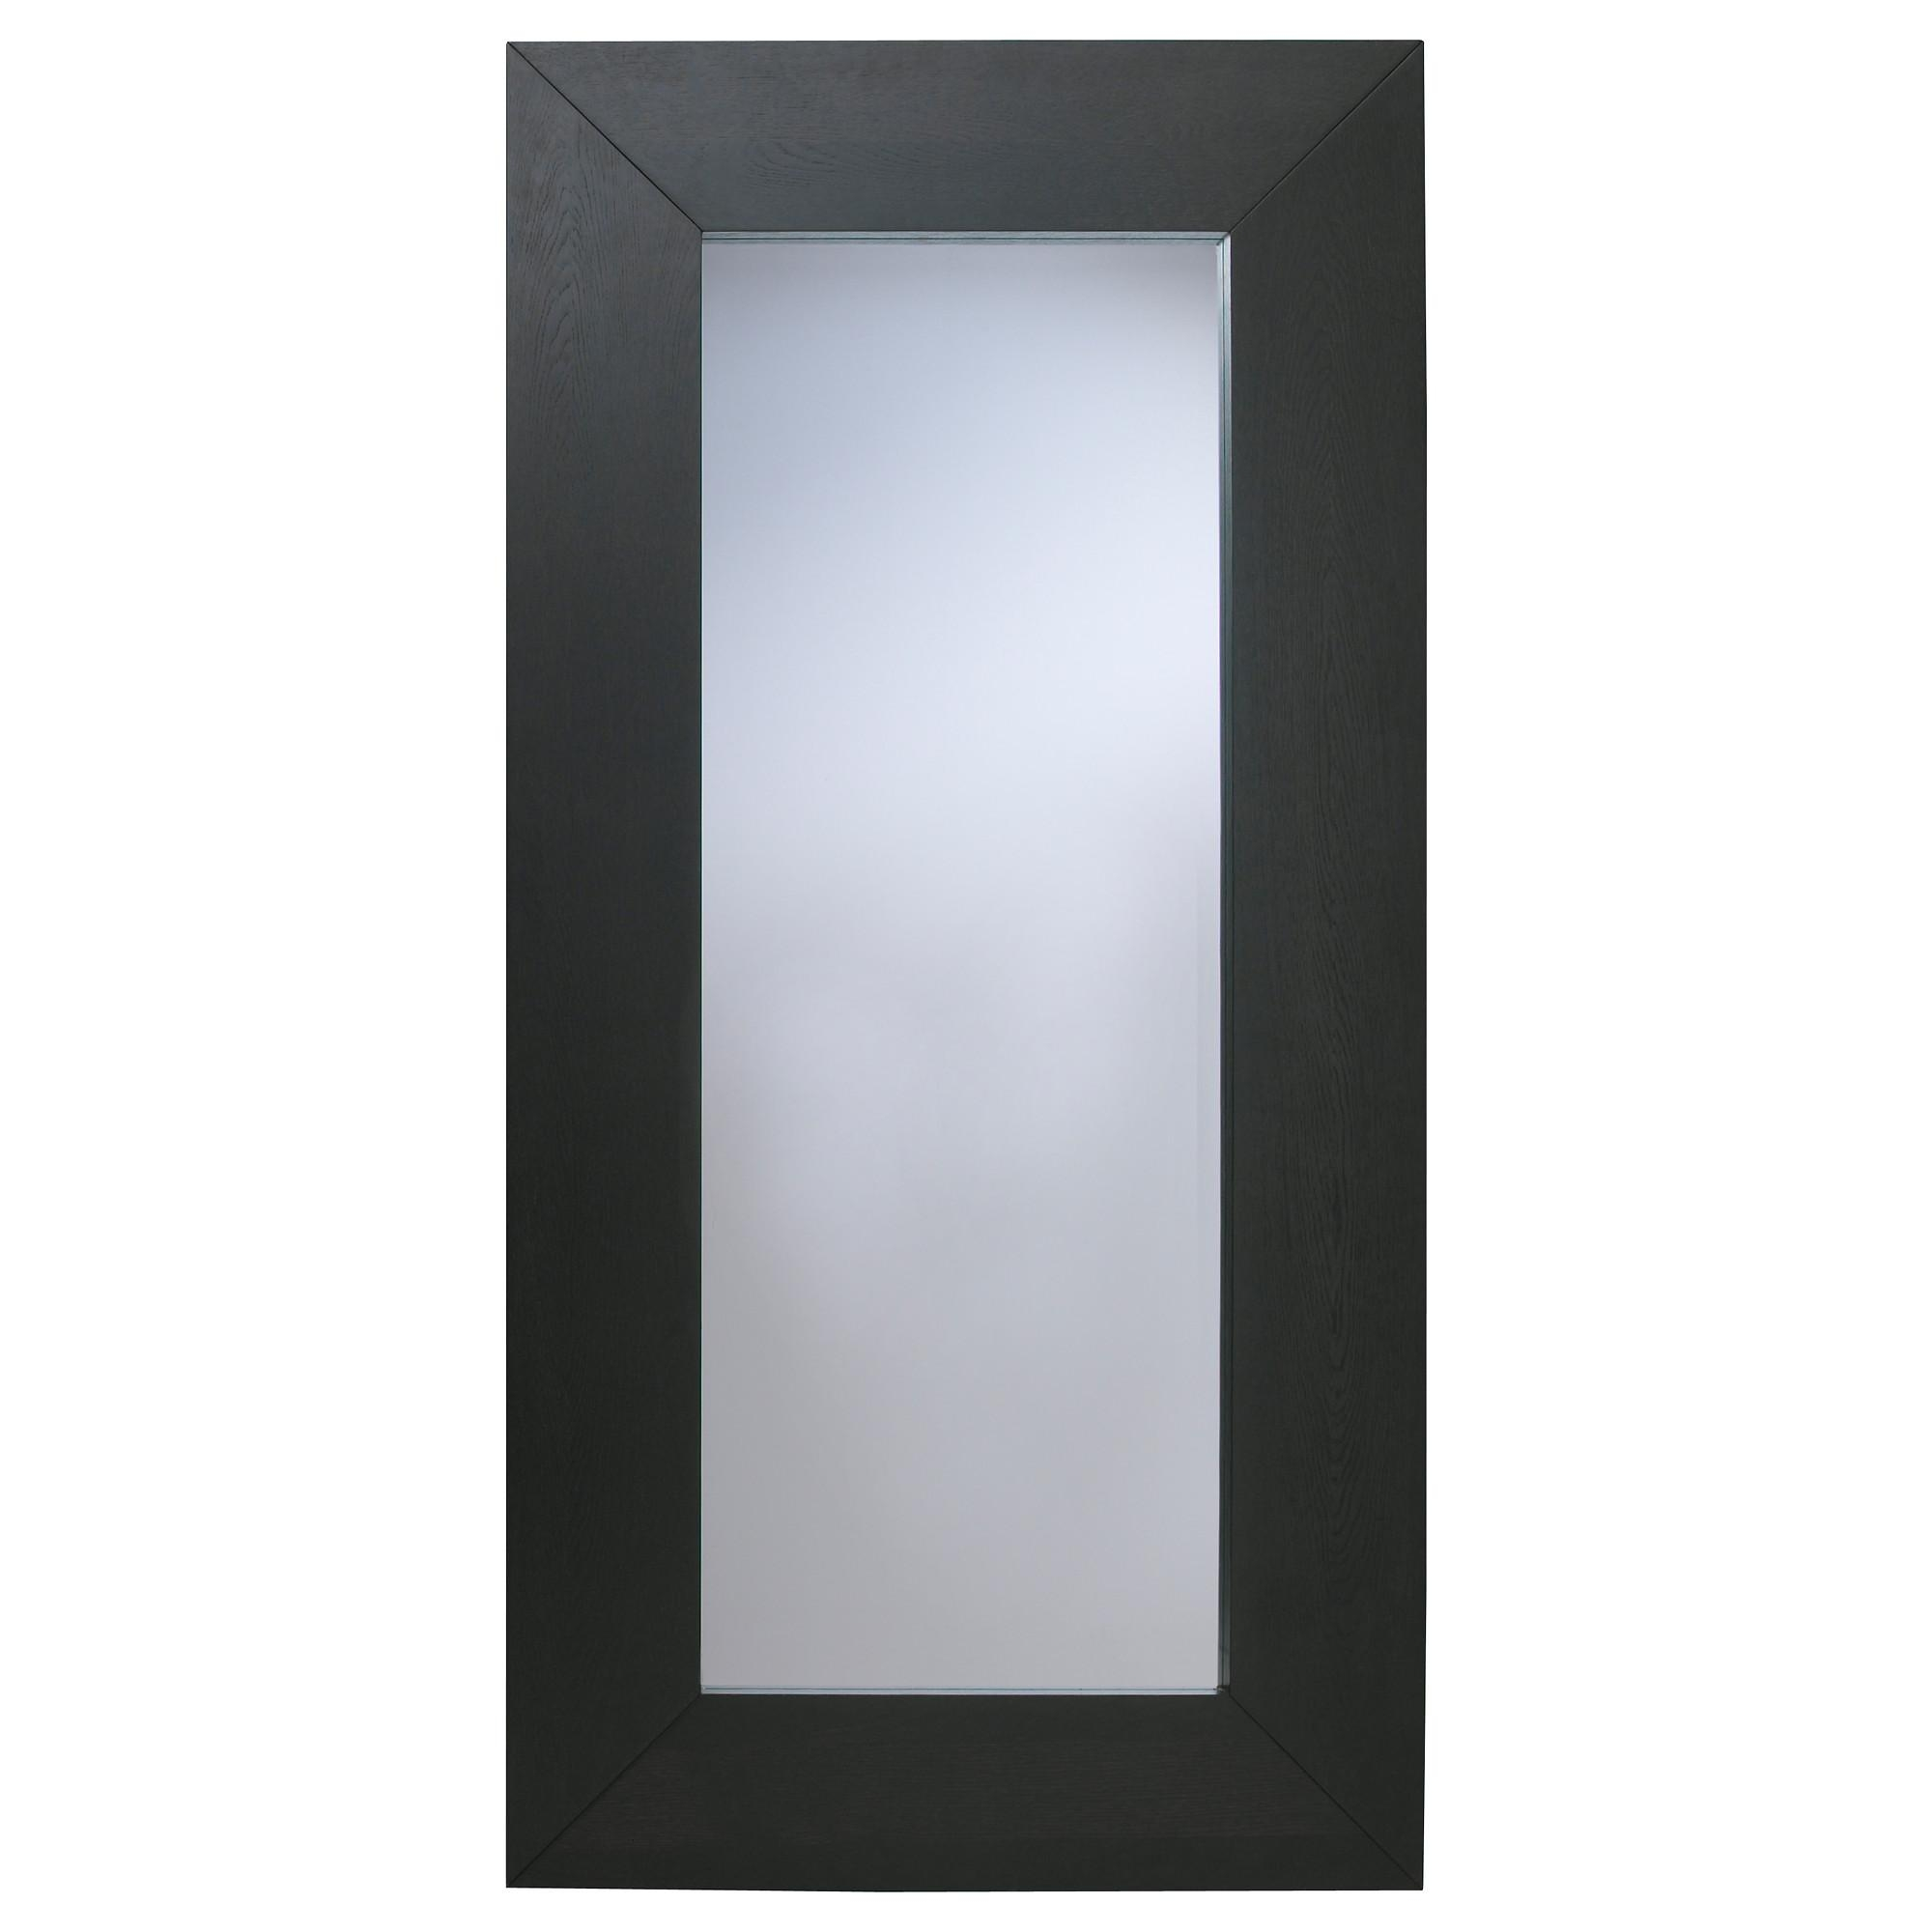 Mongstad Mirror Black Brown 94X190 Cm – Ikea With Long Dressing Mirror (Image 19 of 20)